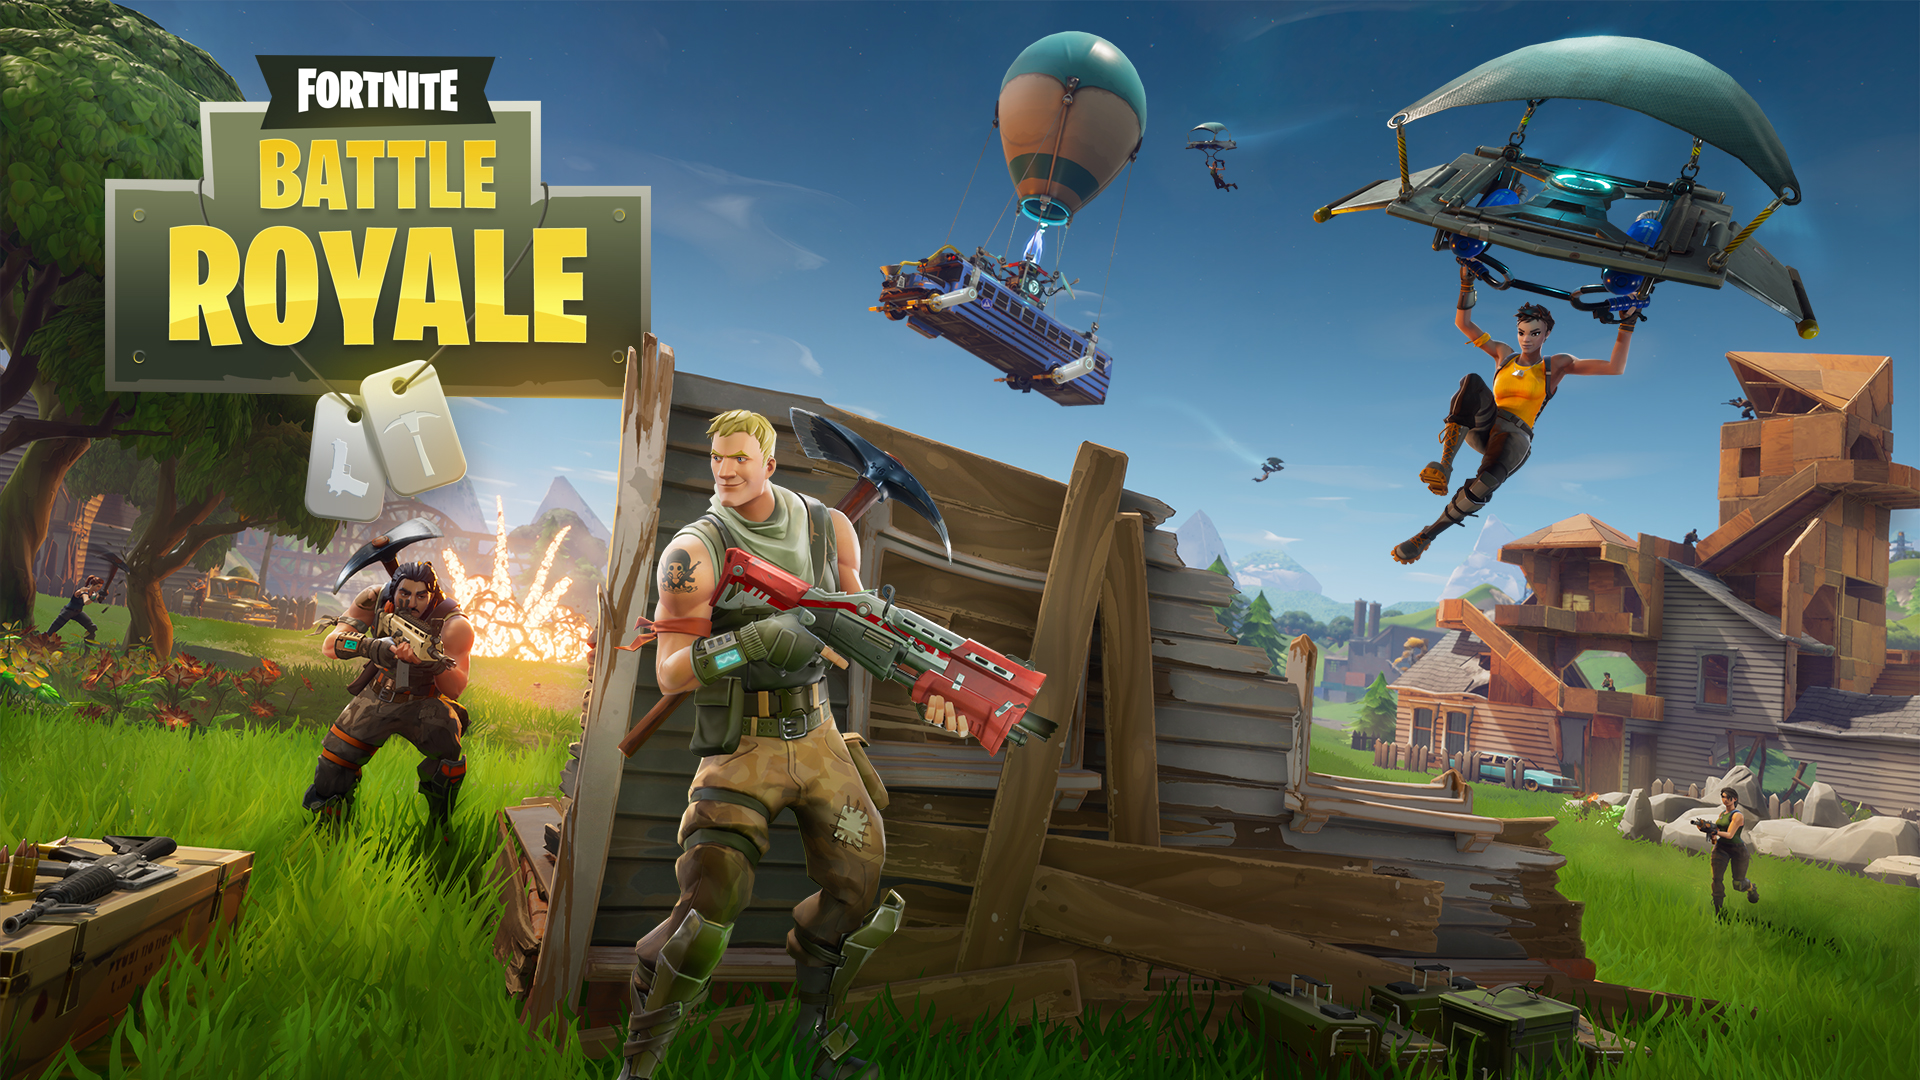 fortnite_battle_royale_big_1